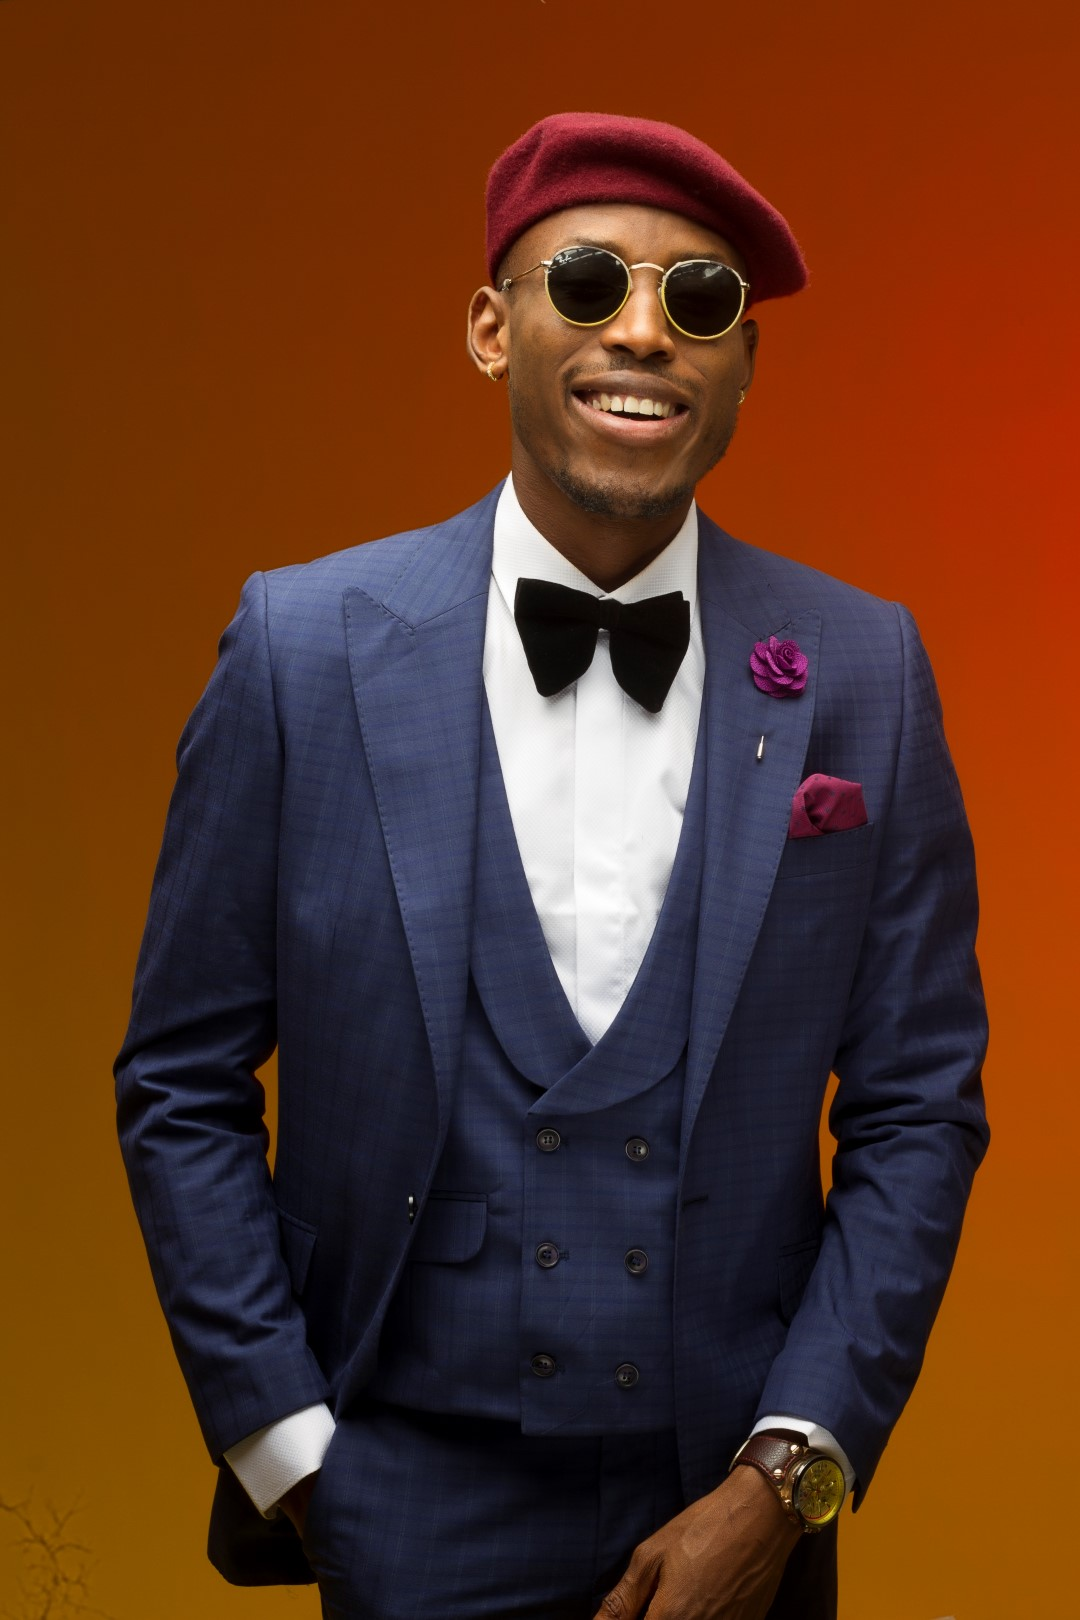 Mr 2kay Releases Bts Video And Photoshoot For Upcoming